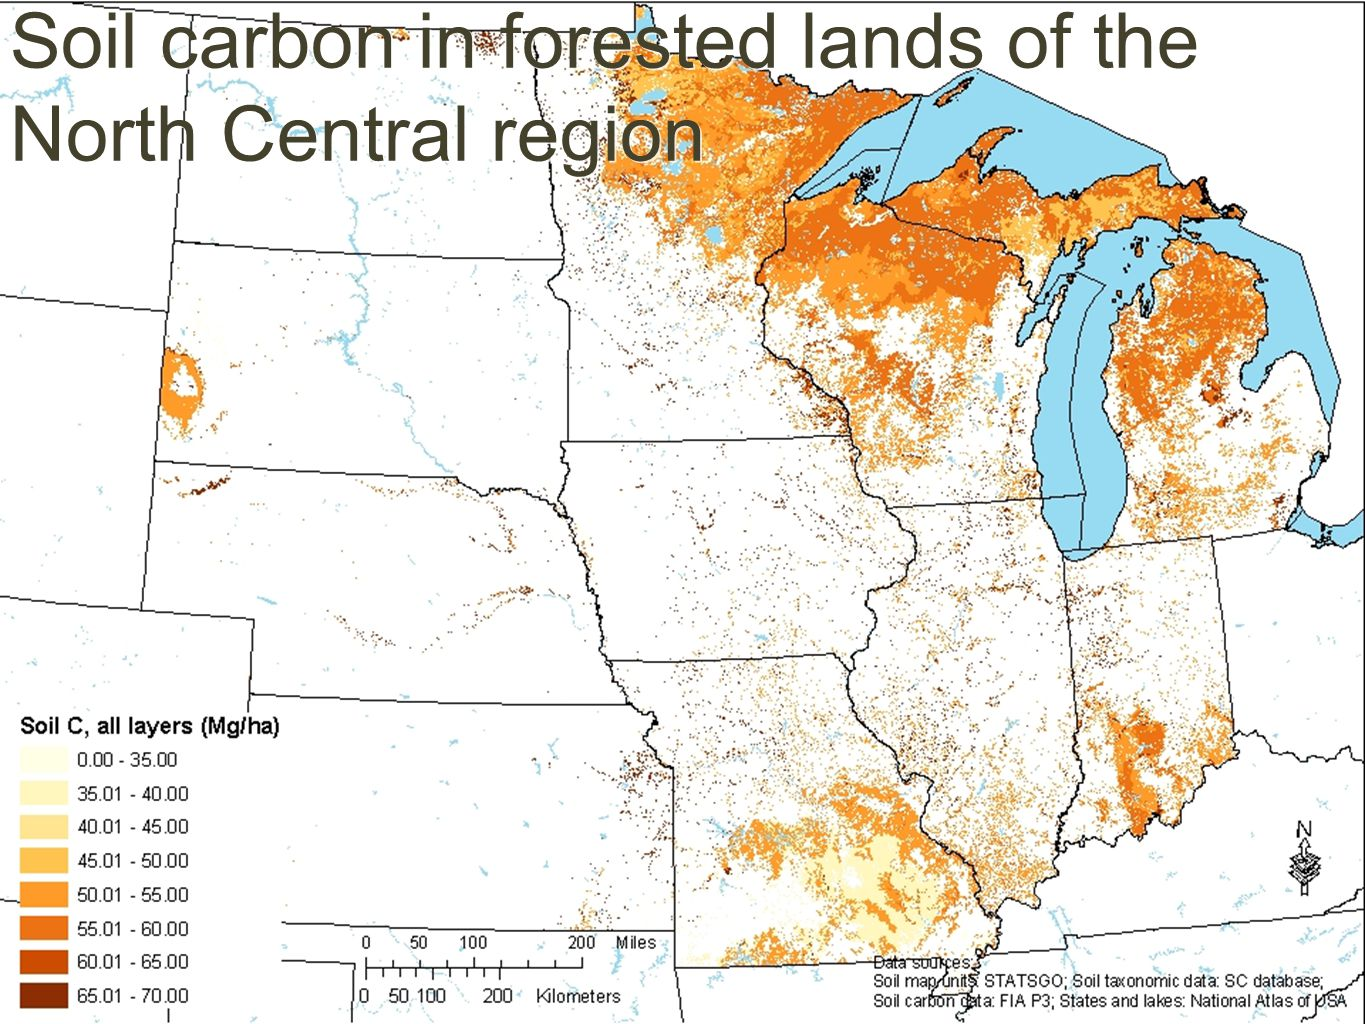 Soil carbon in forested lands of the North Central region